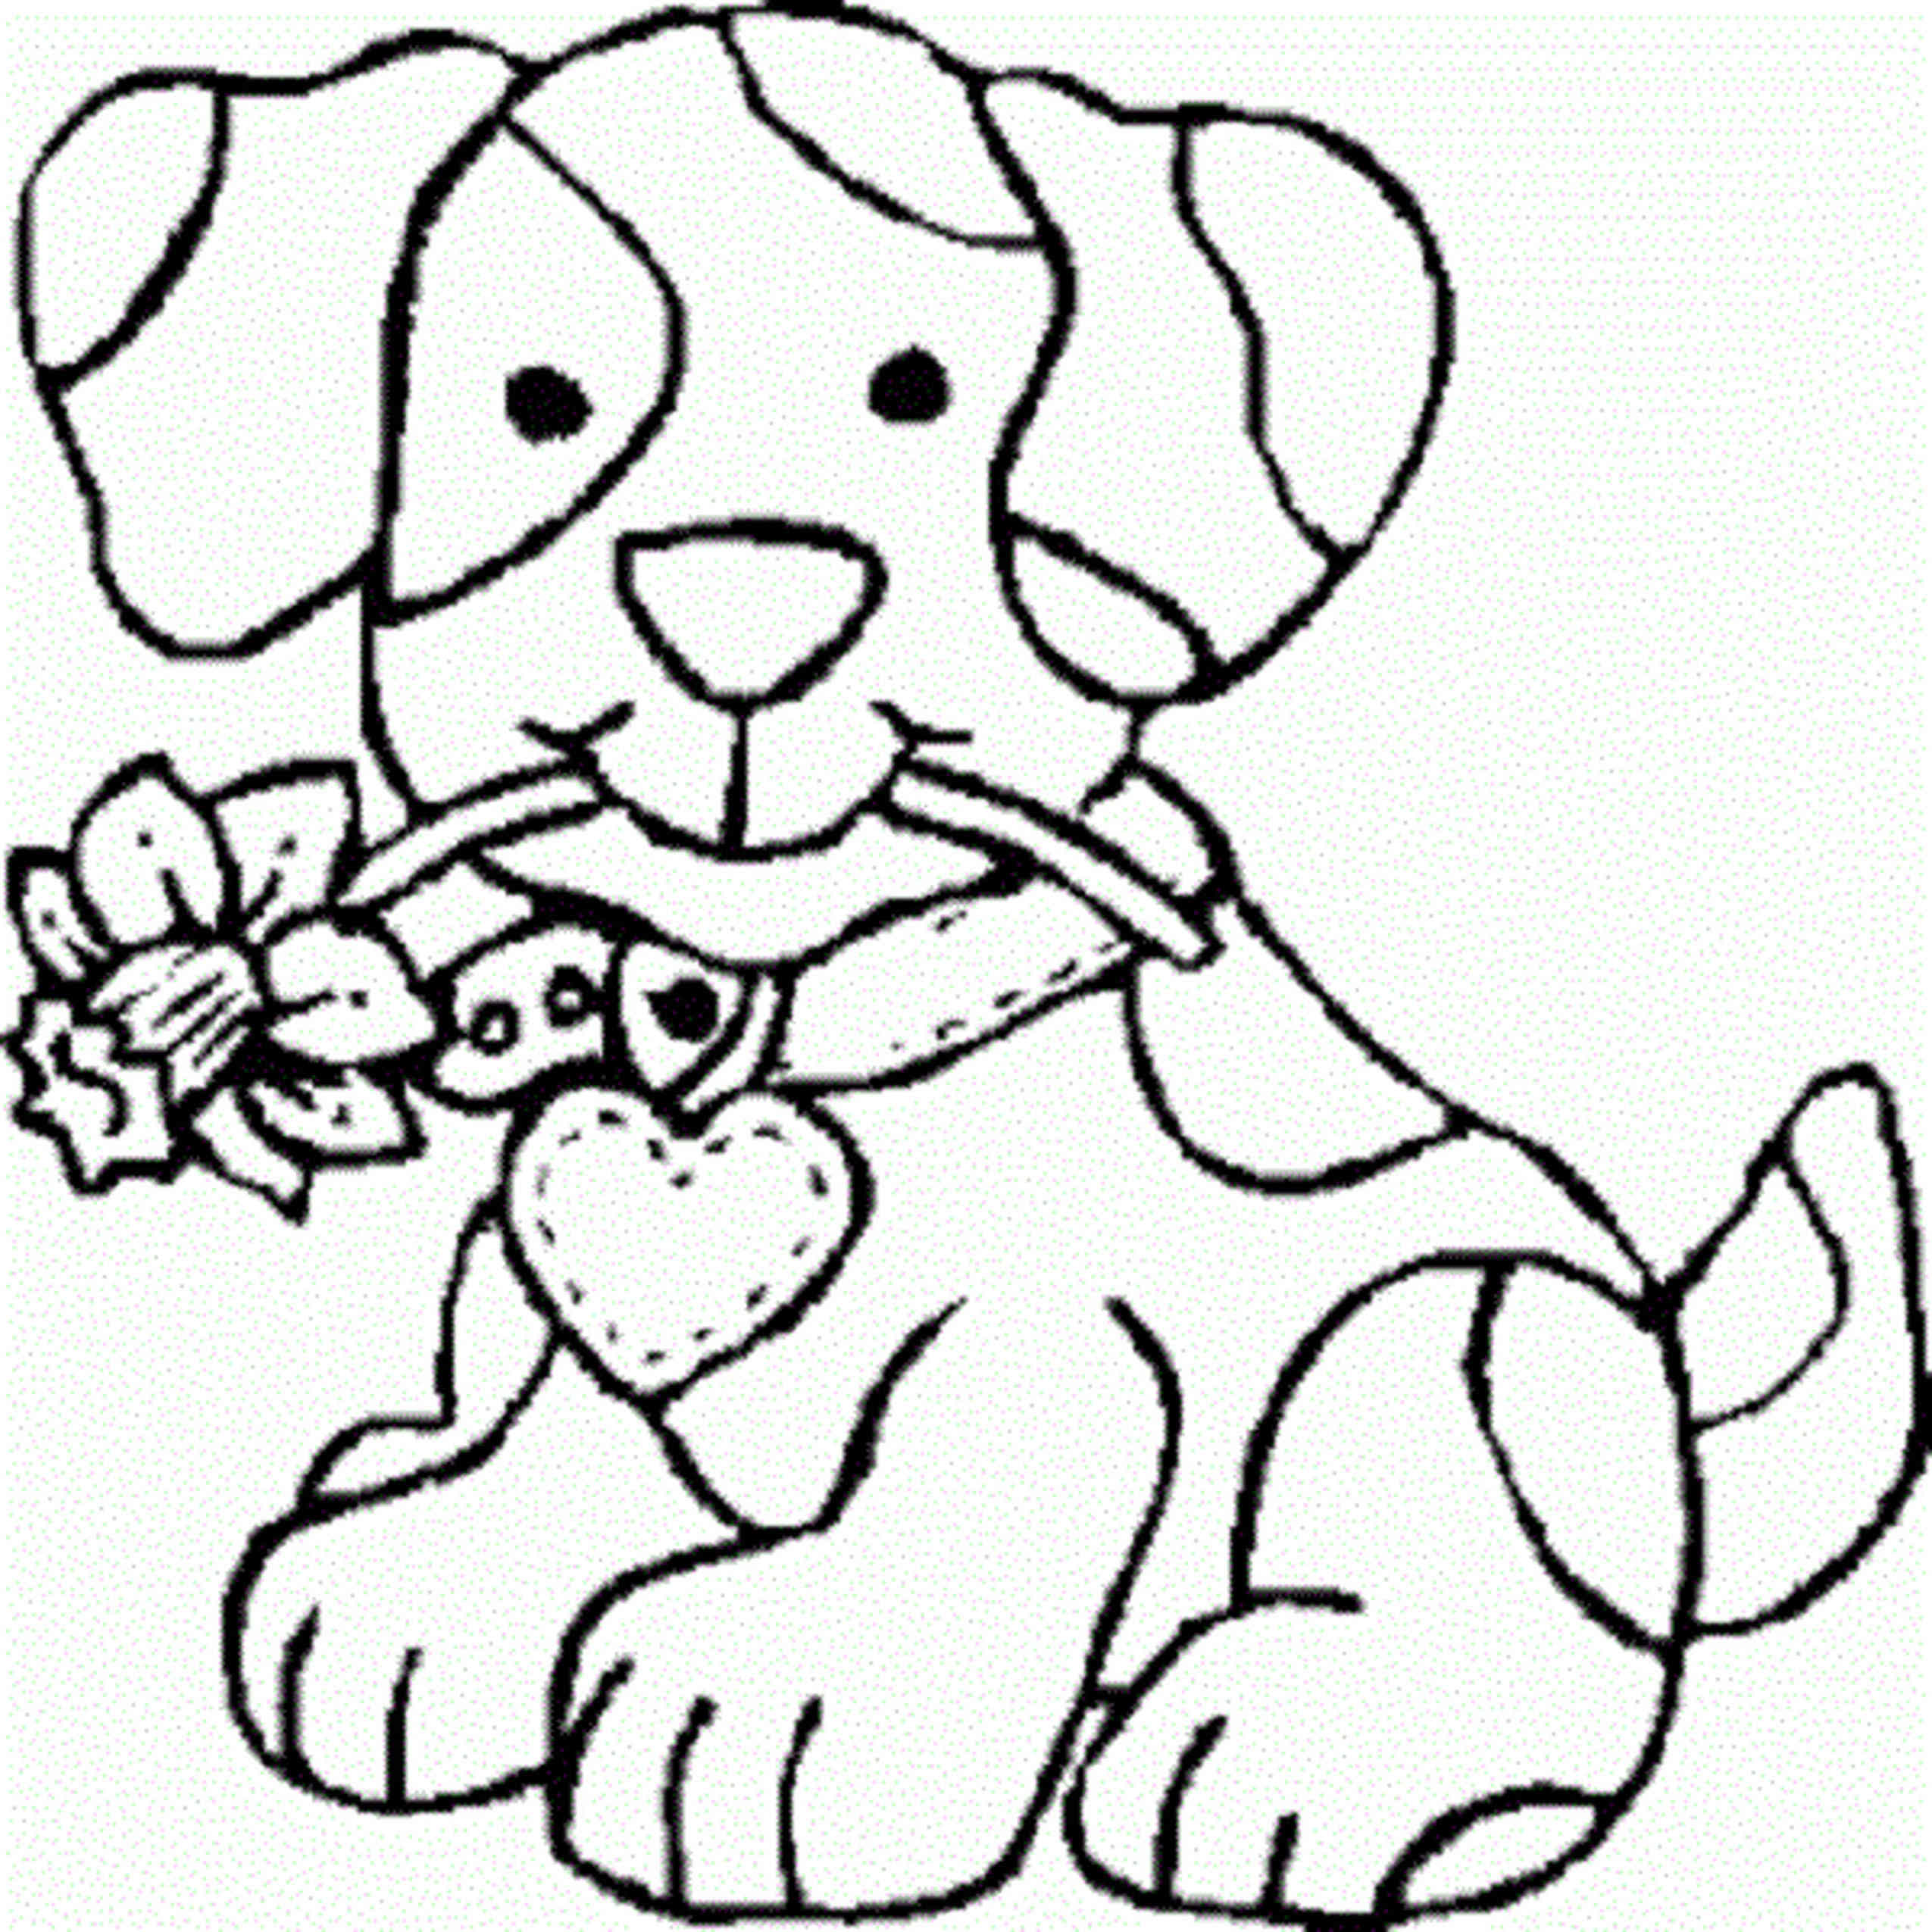 coloring-pages-for-teenage-girls-dog-cute | | BestAppsForKids.com